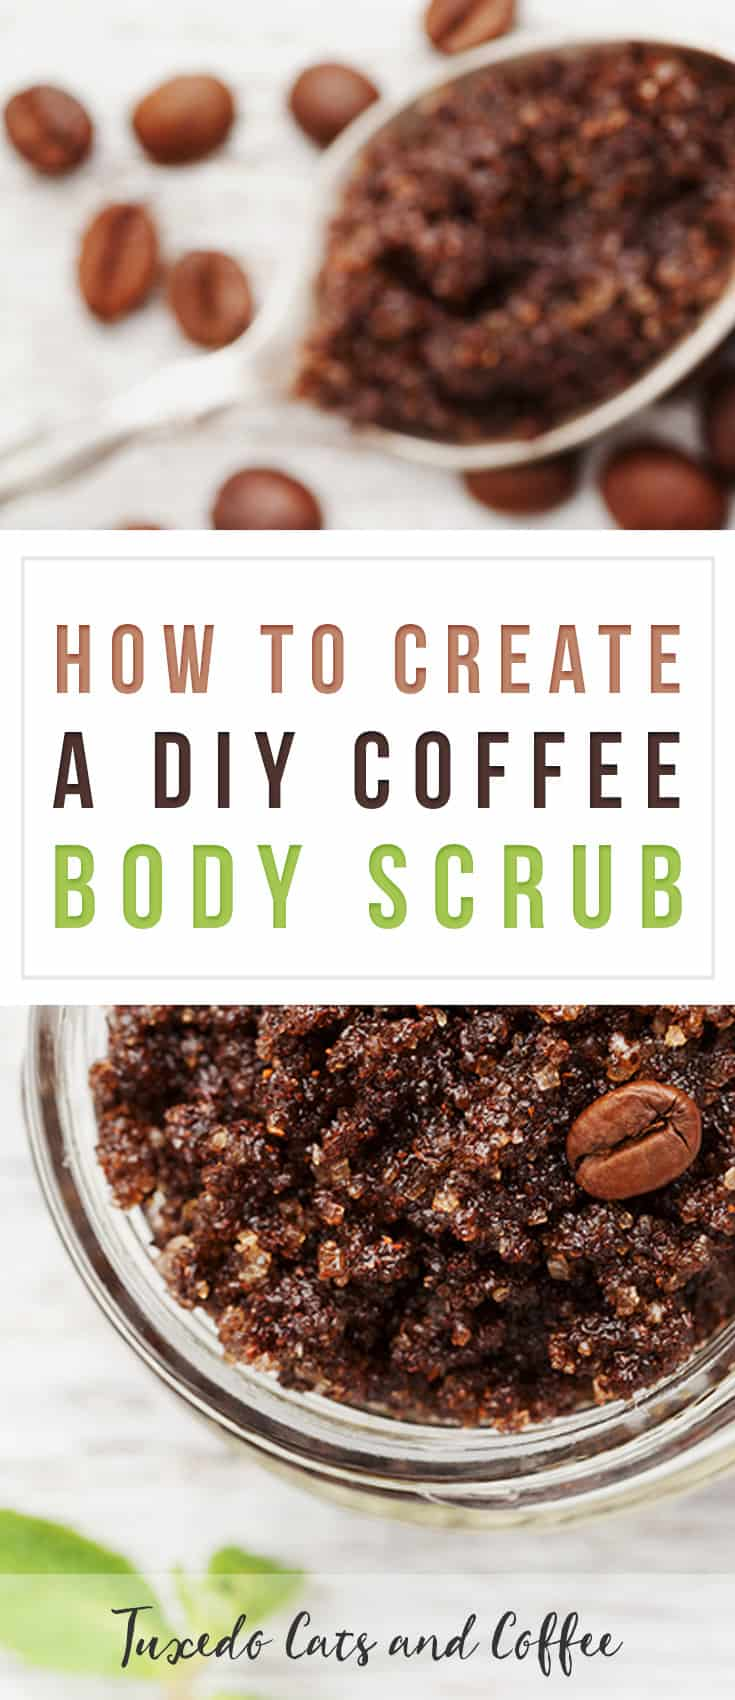 So there's this super popular coffee scrub from a high end beauty brand retails for $15 for a small bag. It's basically just coffee grounds and olive oil, but they charge a premium. Here's how to create a DIY coffee body scrub.